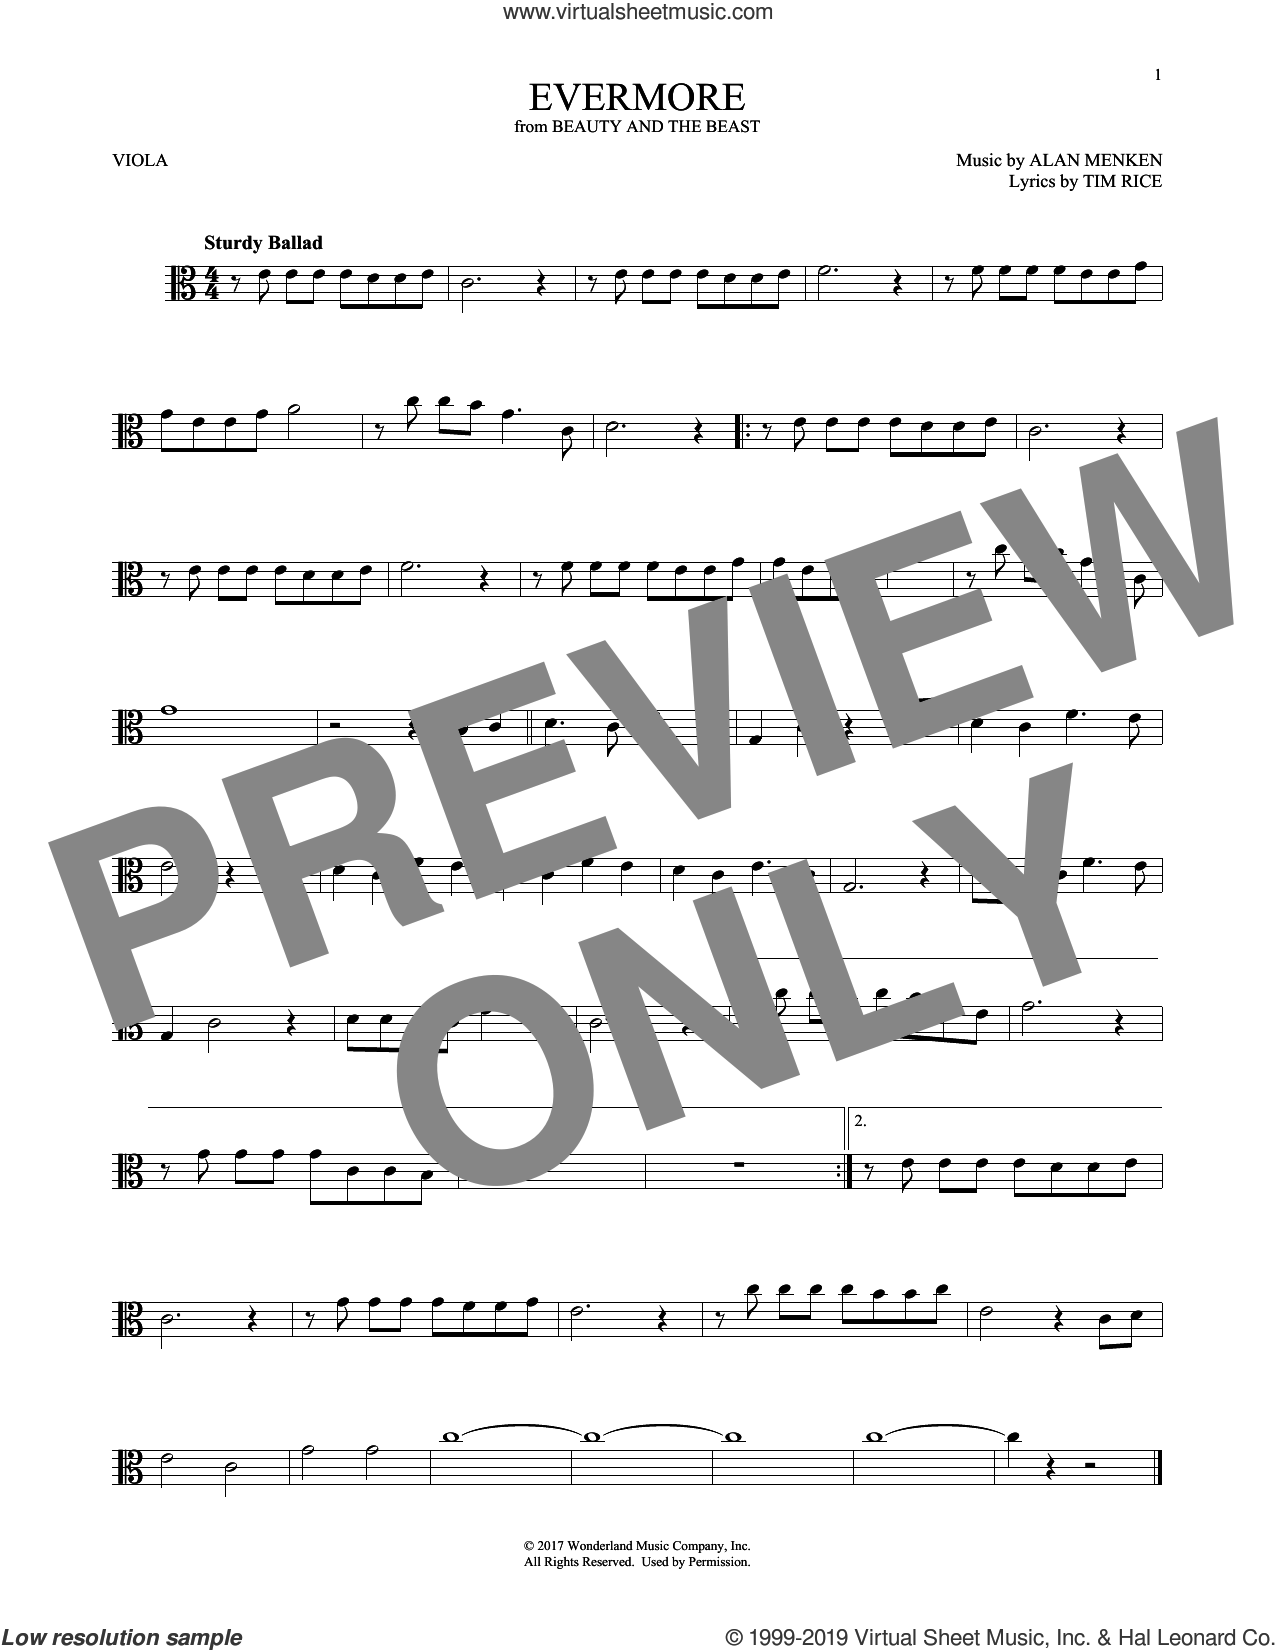 Evermore (from Beauty and The Beast) sheet music for viola solo by Alan Menken and Tim Rice, intermediate skill level